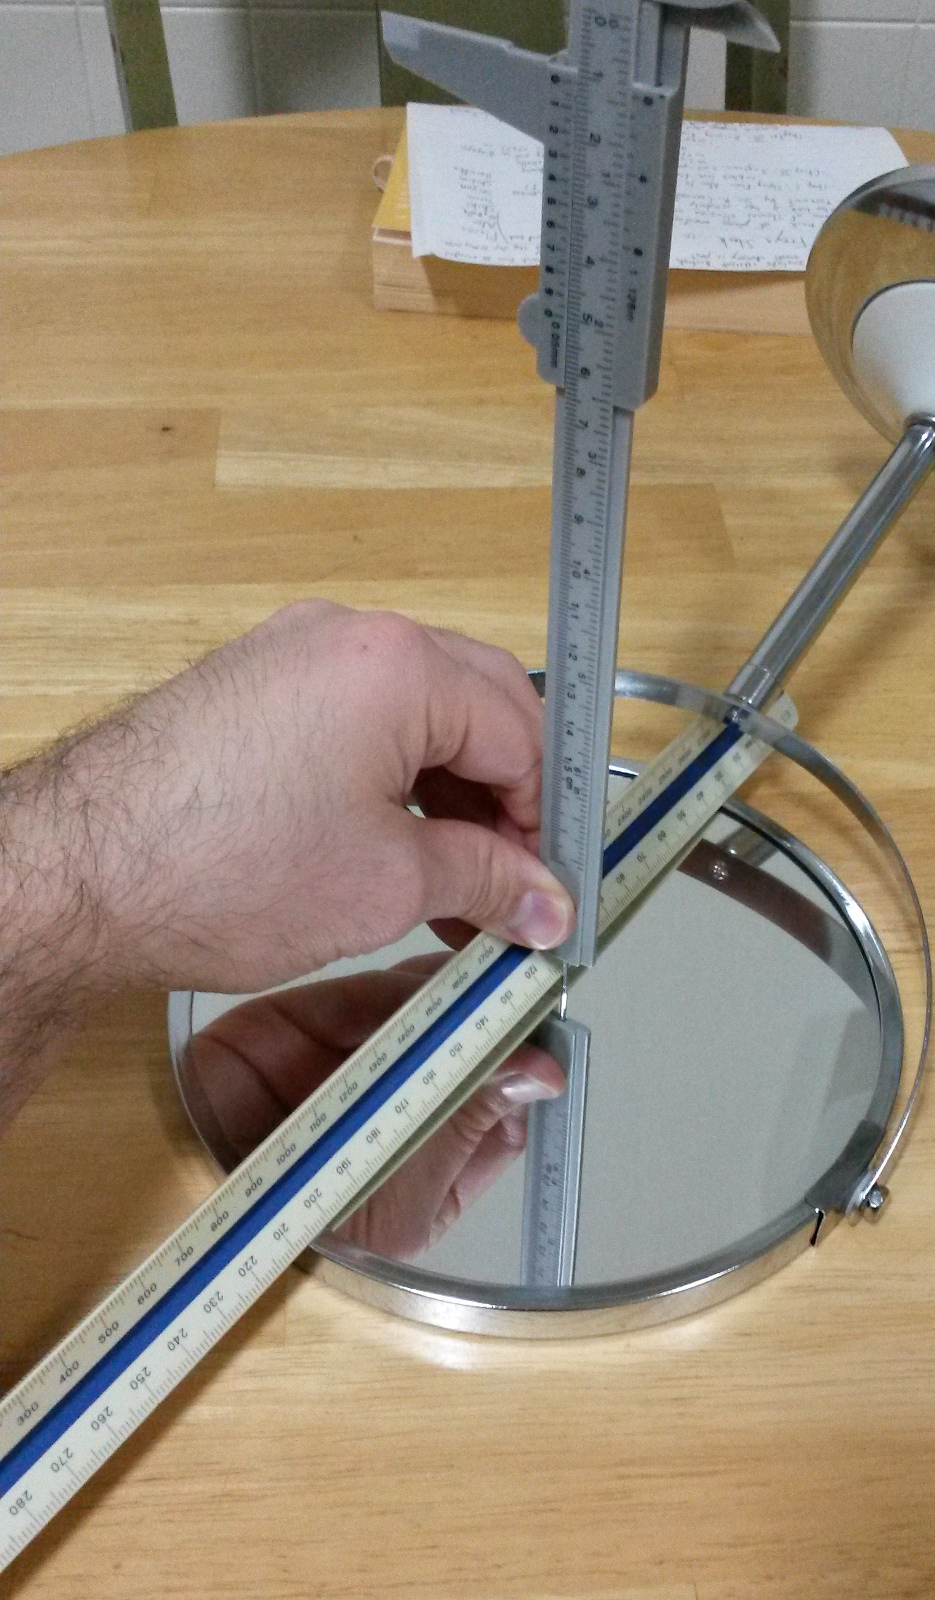 Measuring the mirror's curvature